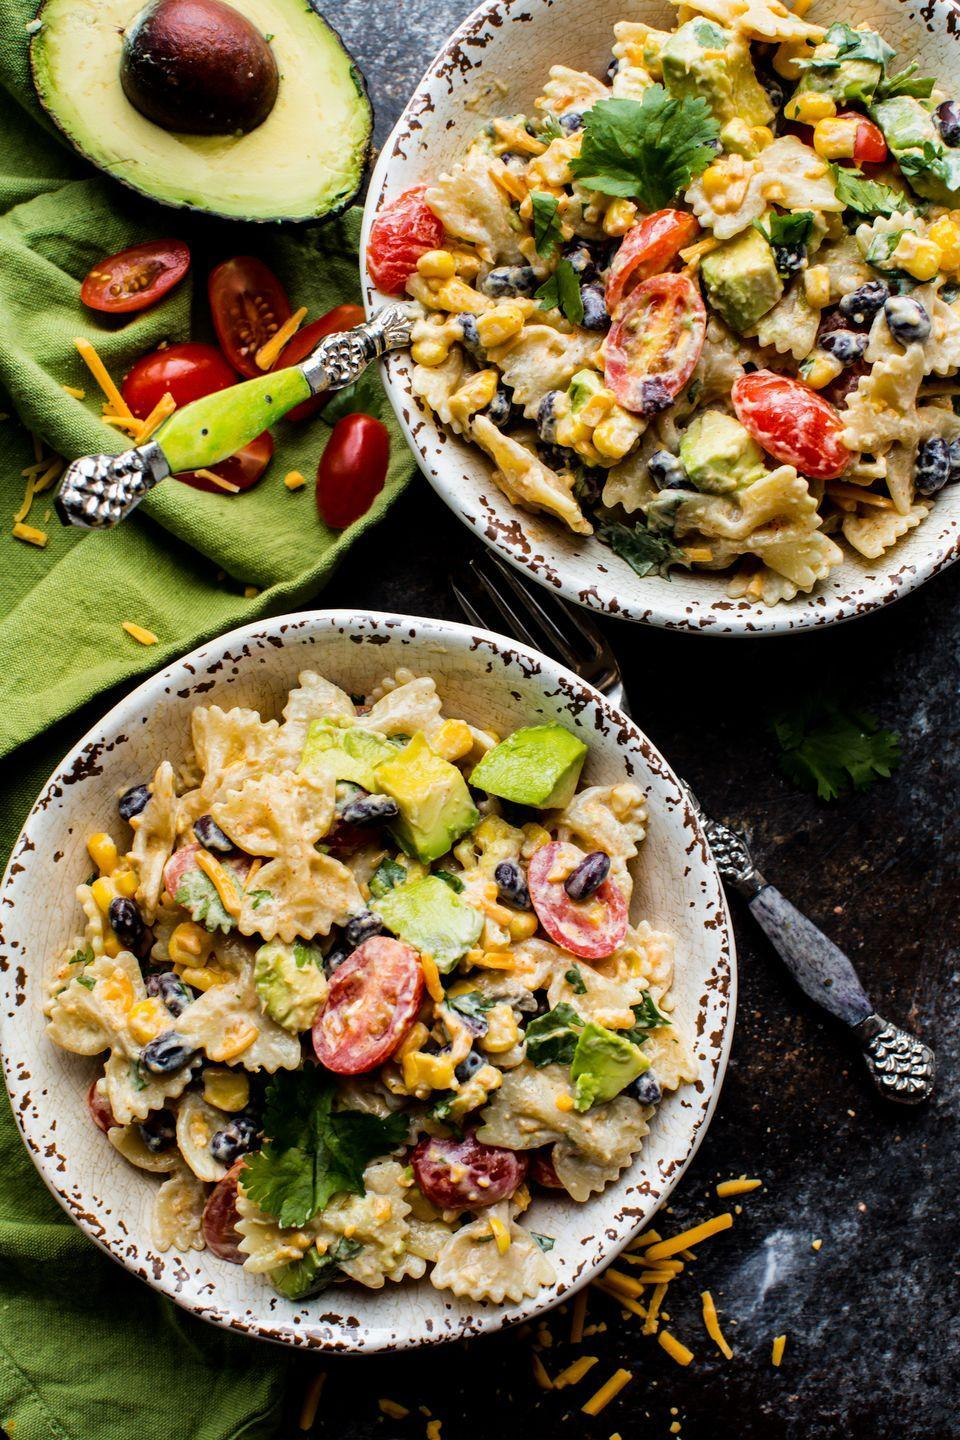 "<p>This kicked up pasta salad with a zesty Greek yogurt dressing is full of the fixings from zesty taco seasoning to cilantro, cheddar cheese, avocado, black beans, and corn. So easy to mix up ahead of time, too!</p><p>Get the recipe from <a href=""https://www.delish.com/cooking/recipe-ideas/recipes/a53448/southwestern-pasta-salad-recipe/"" rel=""nofollow noopener"" target=""_blank"" data-ylk=""slk:Delish"" class=""link rapid-noclick-resp"">Delish</a>.</p>"